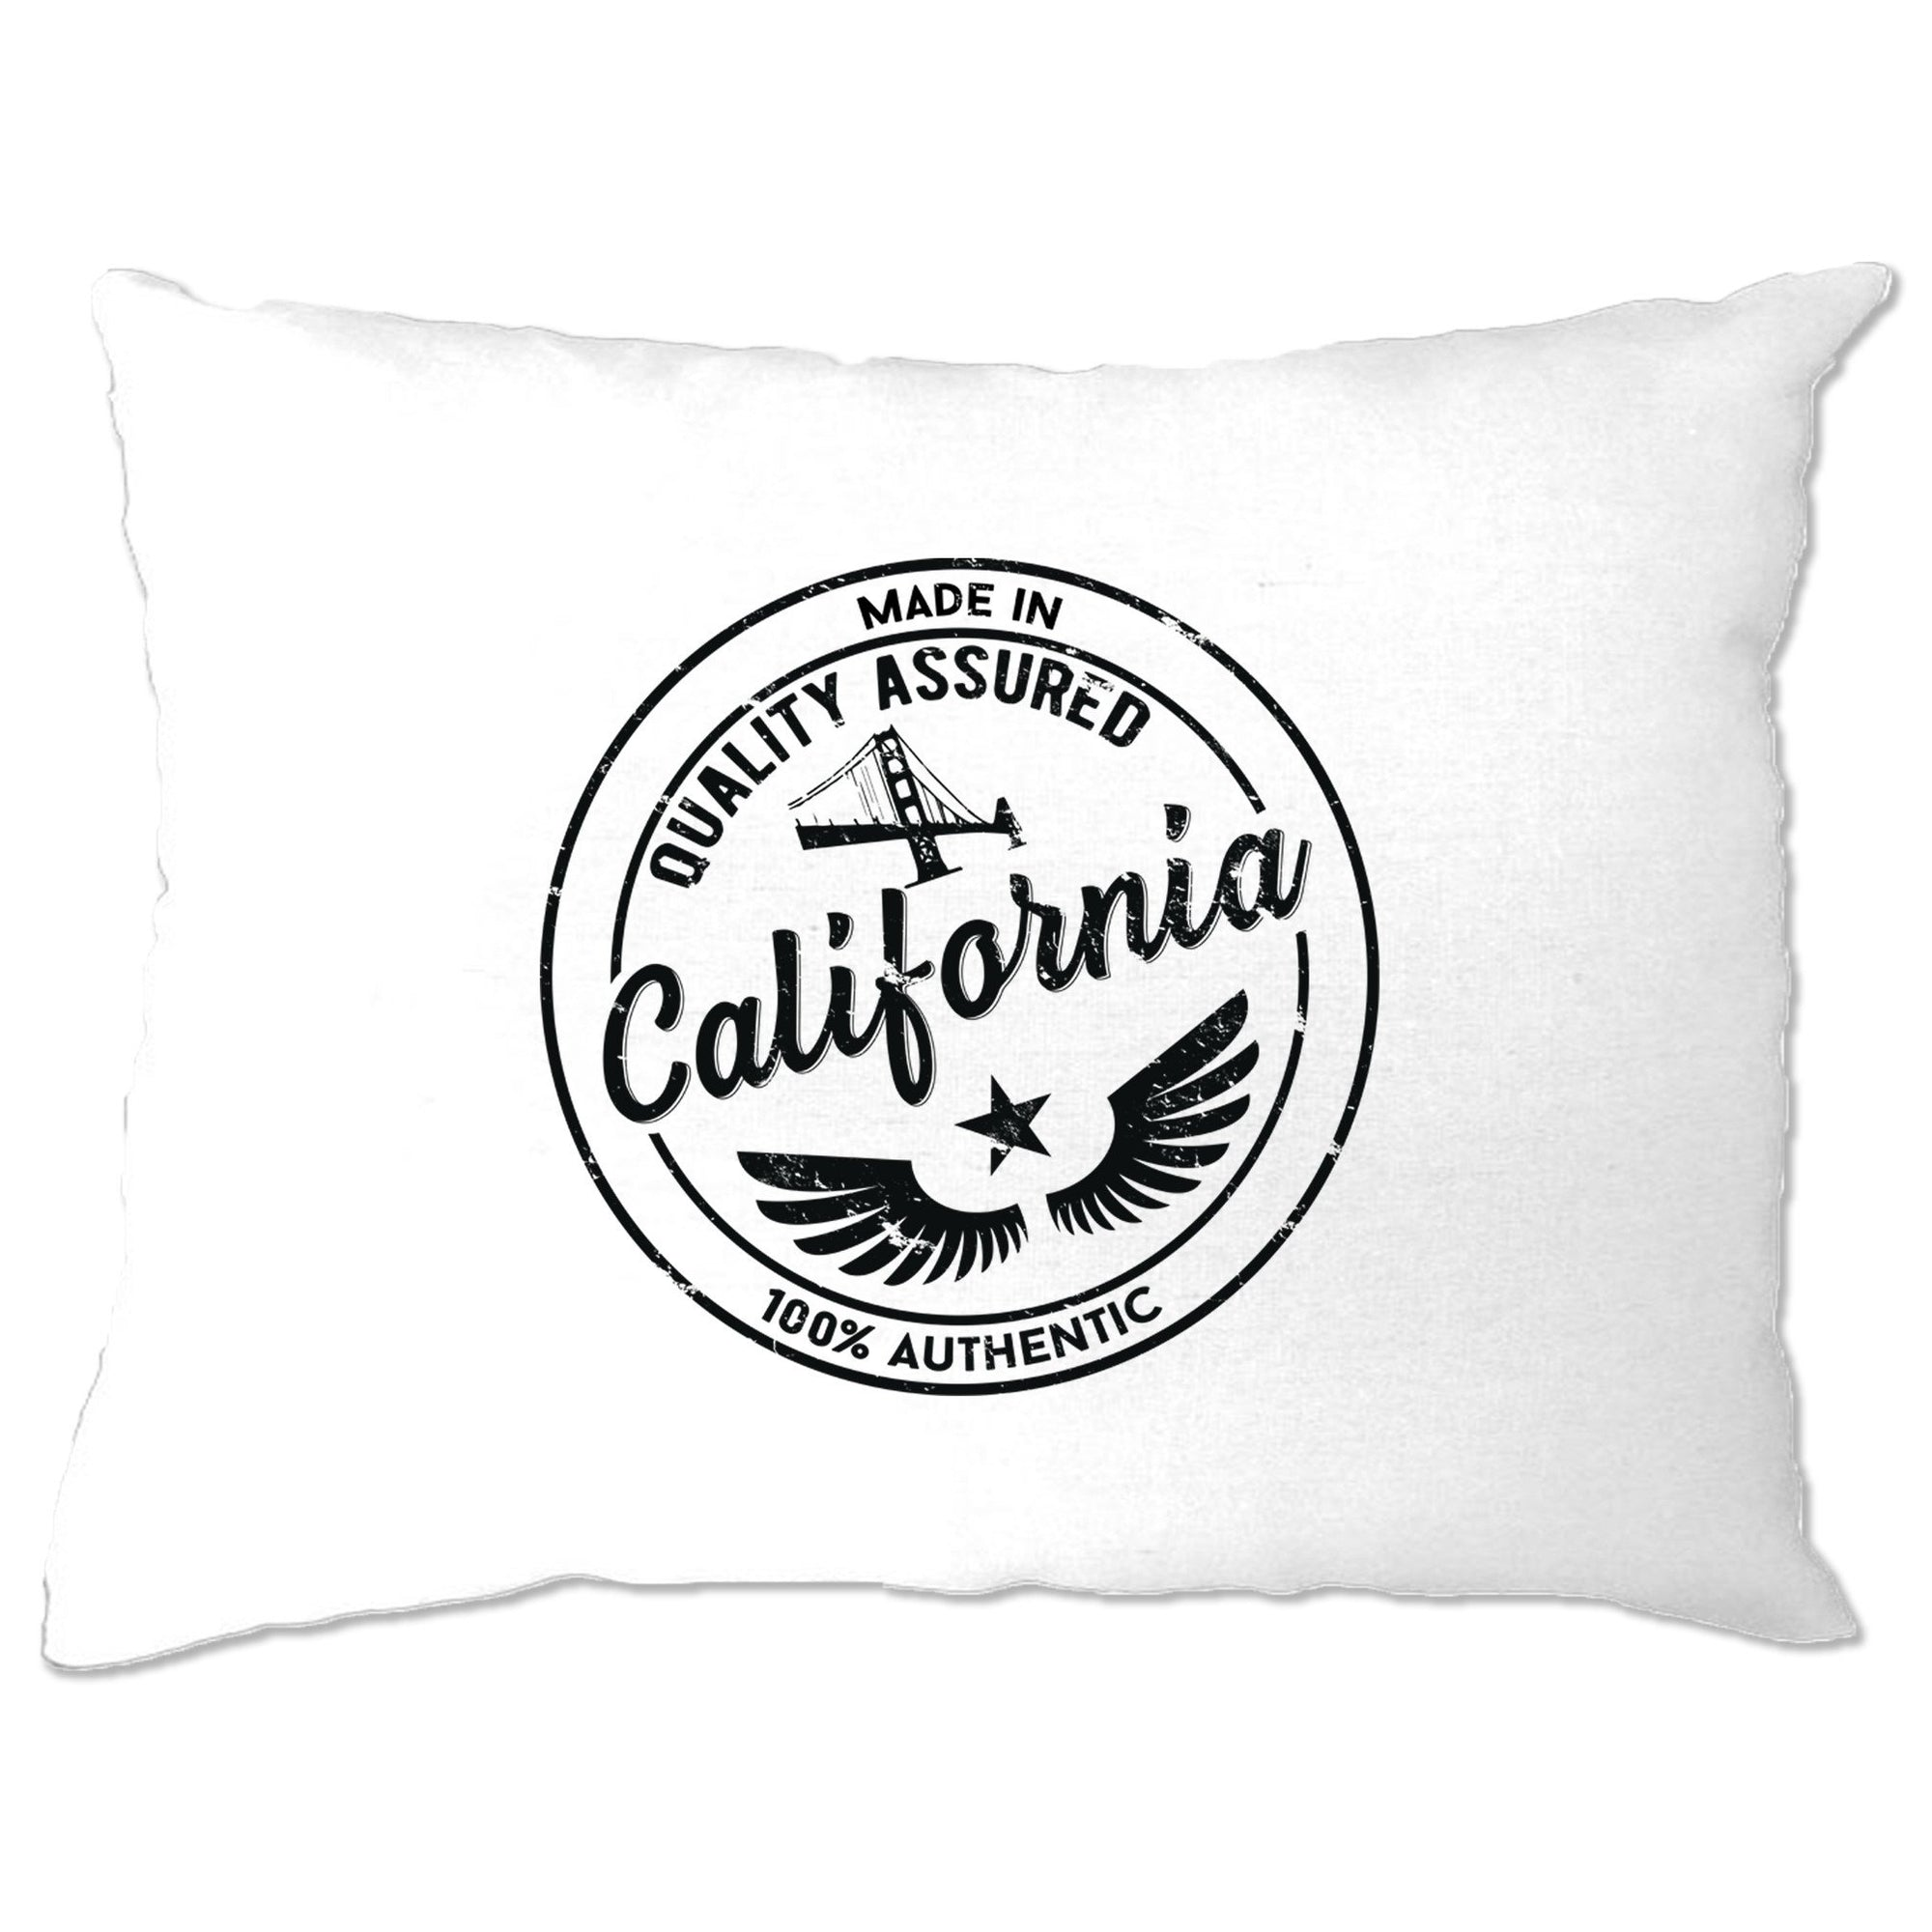 Hometown Pride Pillow Case Made in